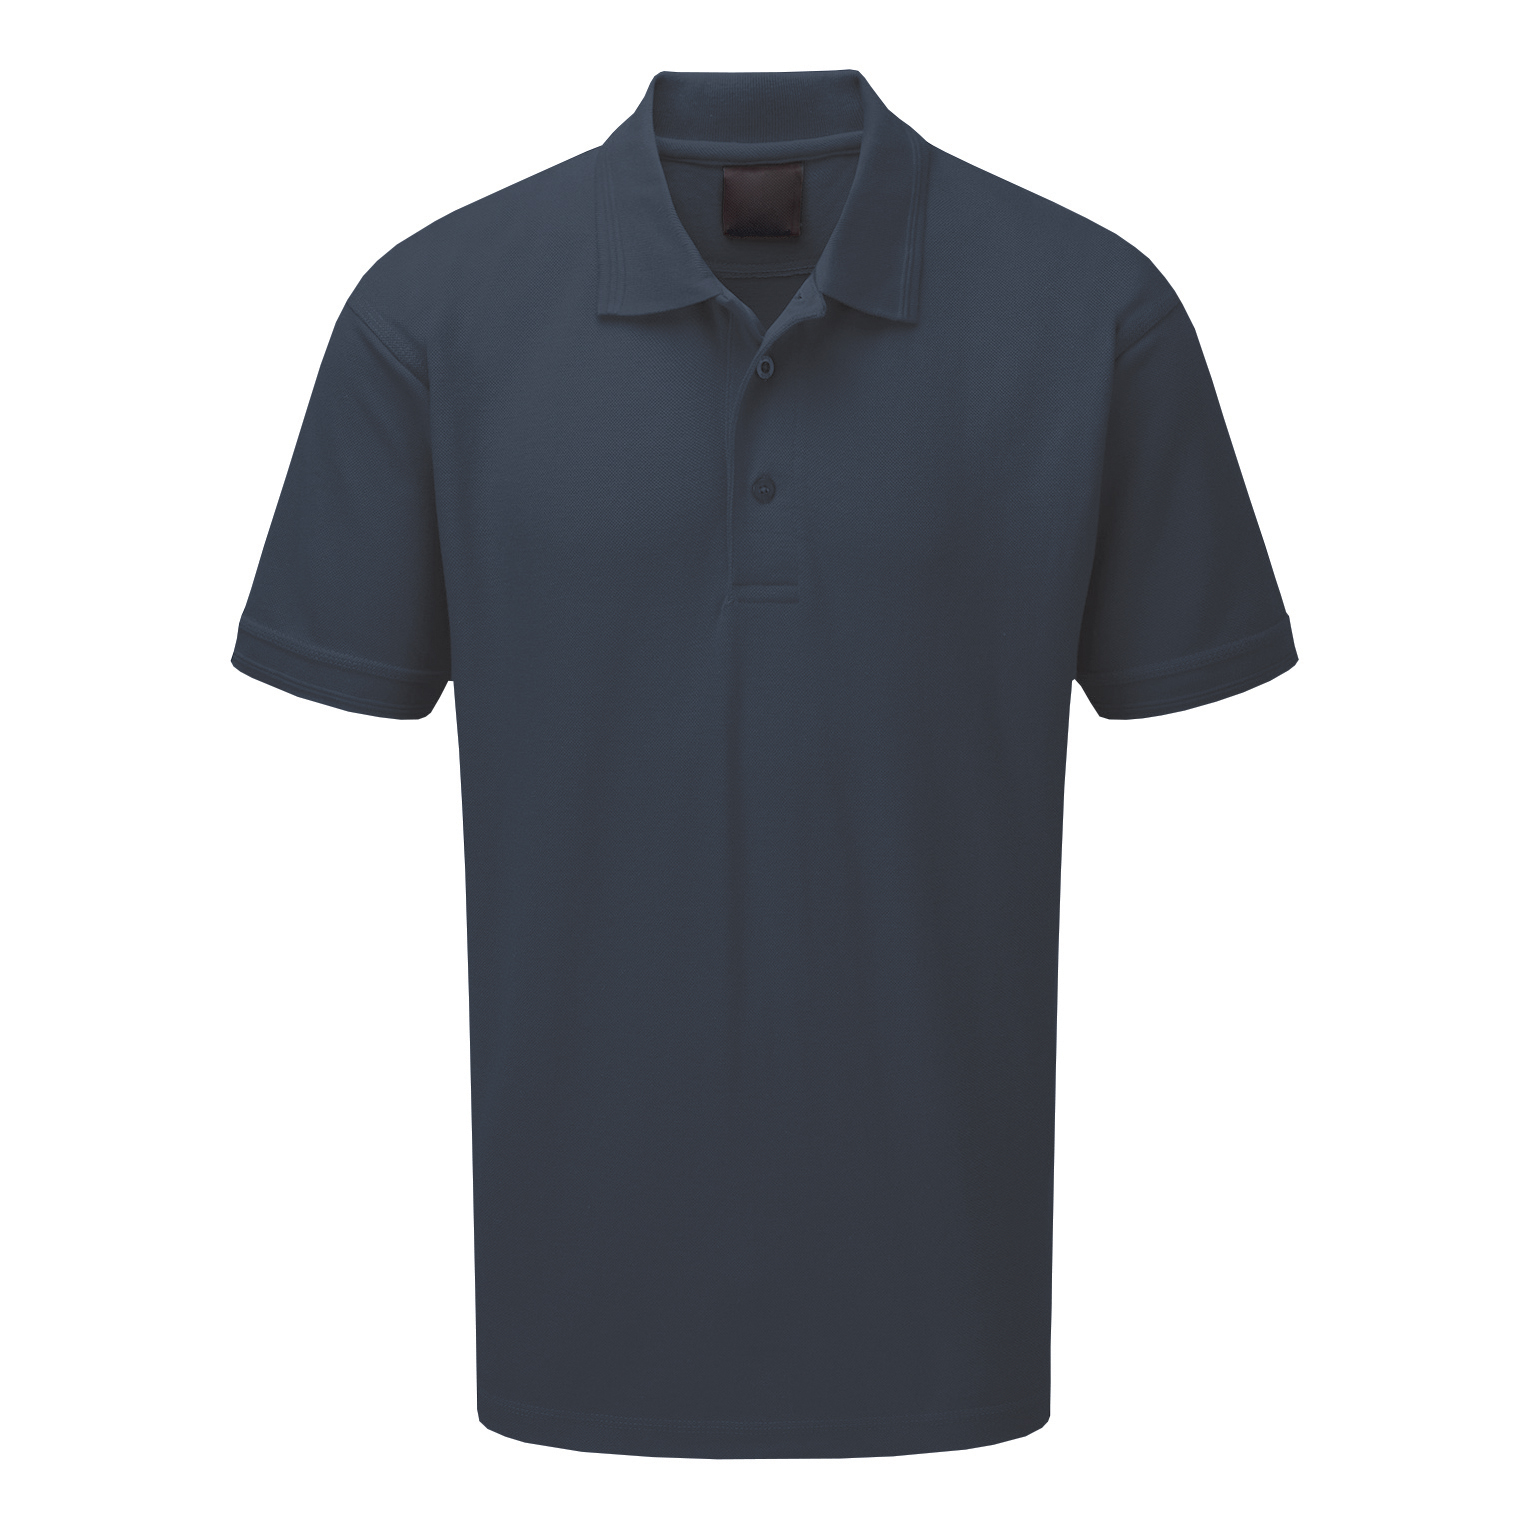 Premium Polo Shirt Triple Button 220gsm Polycotton 5XL Graphite Ref CLPKSGY5XL *Approx 3 Day Leadtime*